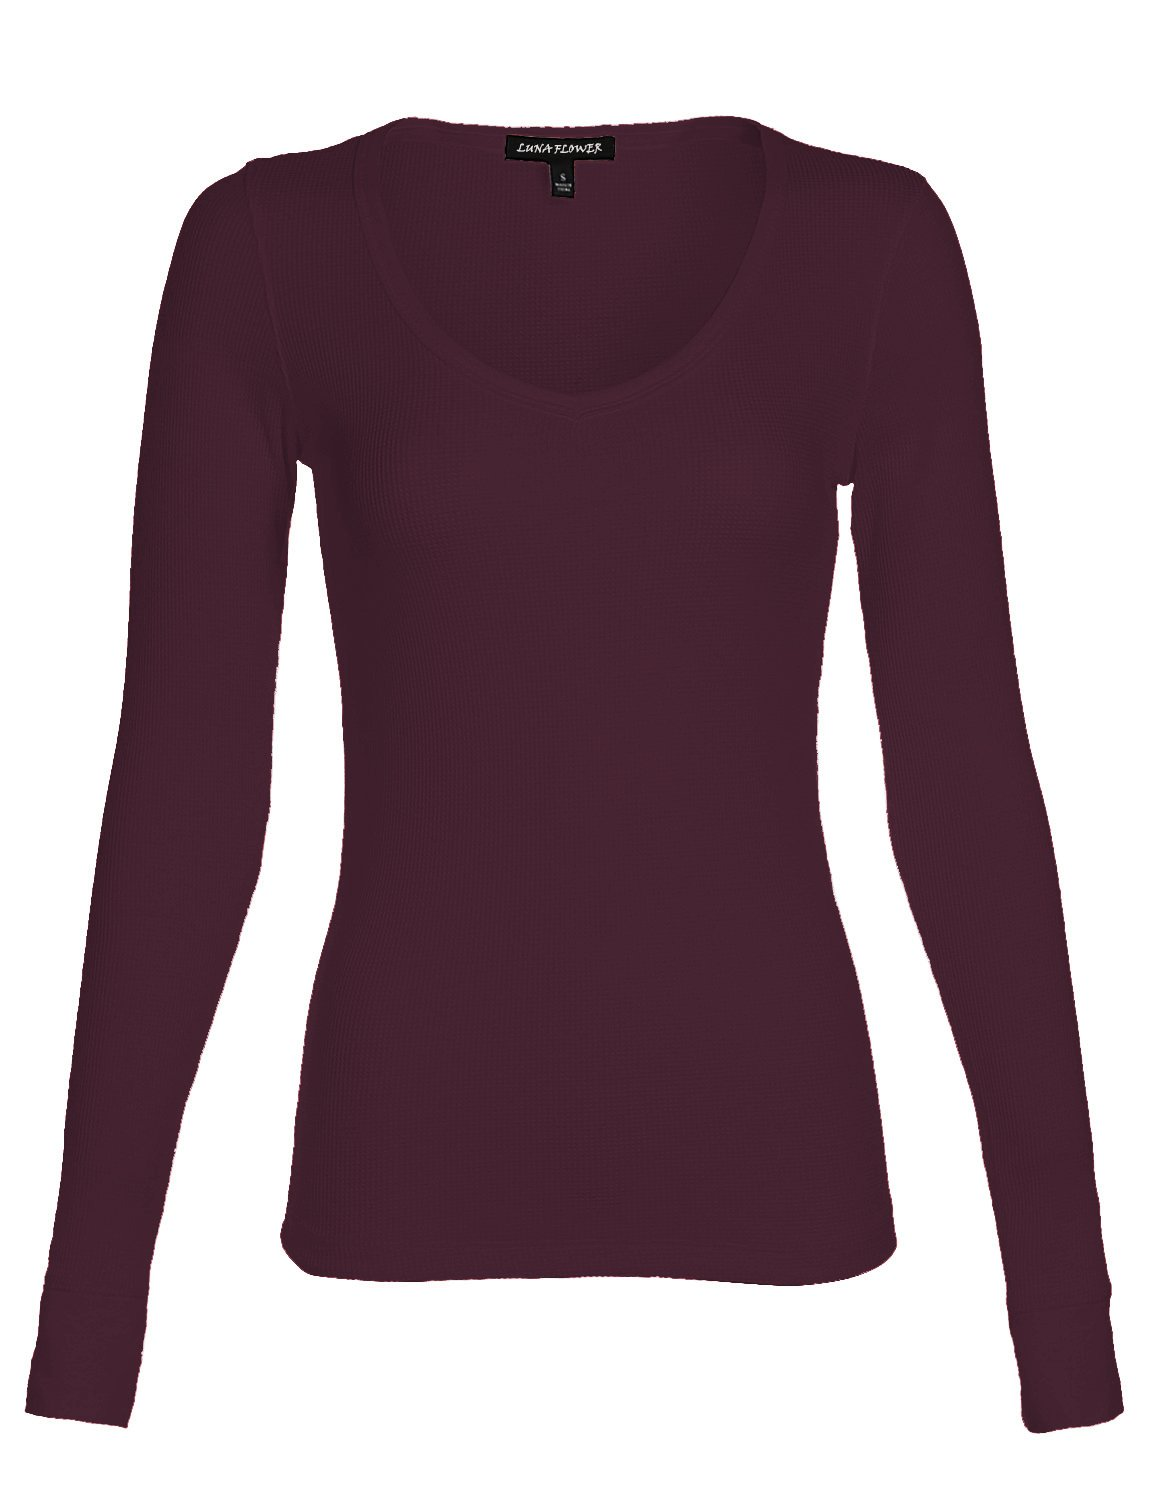 Luna Flower Women's Long Sleeve Sexy Basic Thermal V-Neck Top Plum Large (GTEW250)